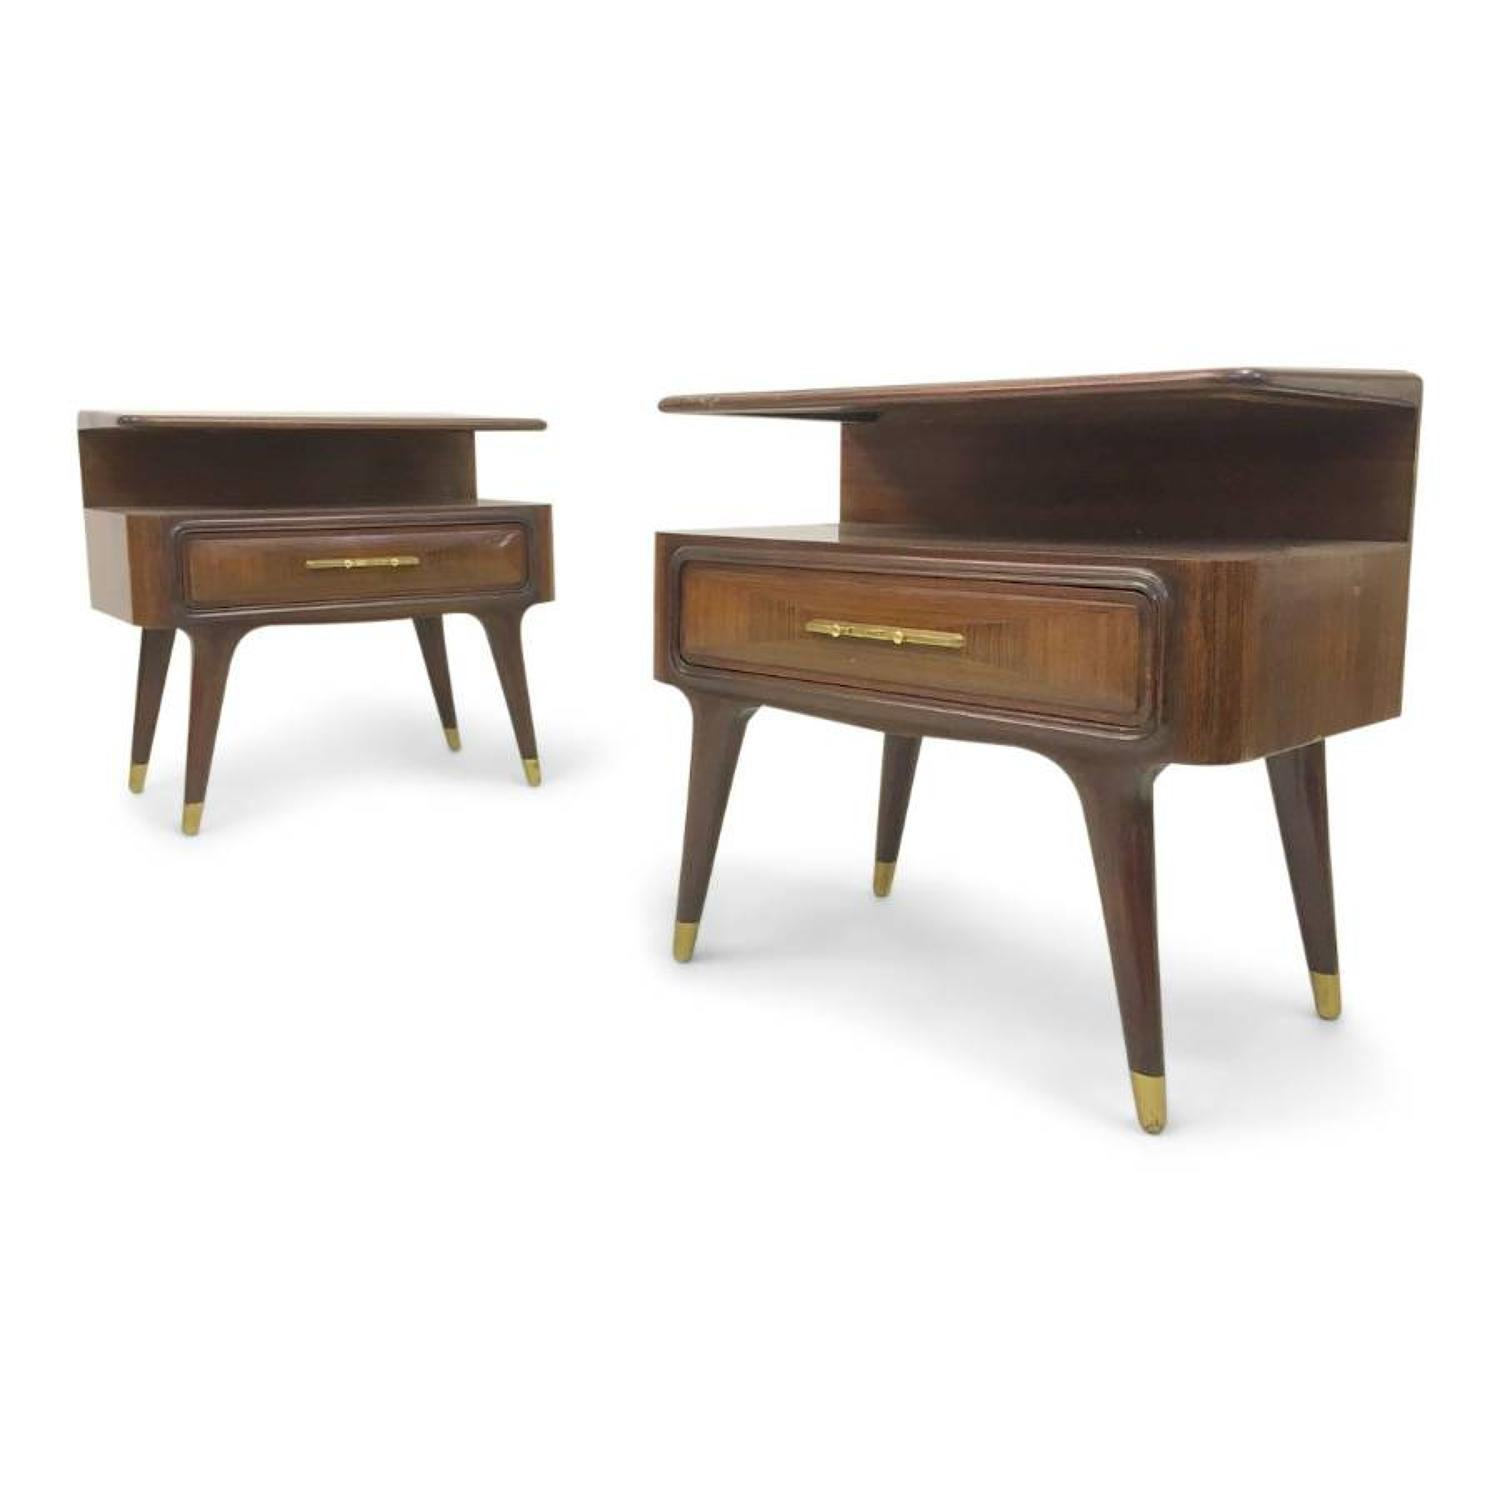 A pair of 1960s Italian rosewood bedside tables